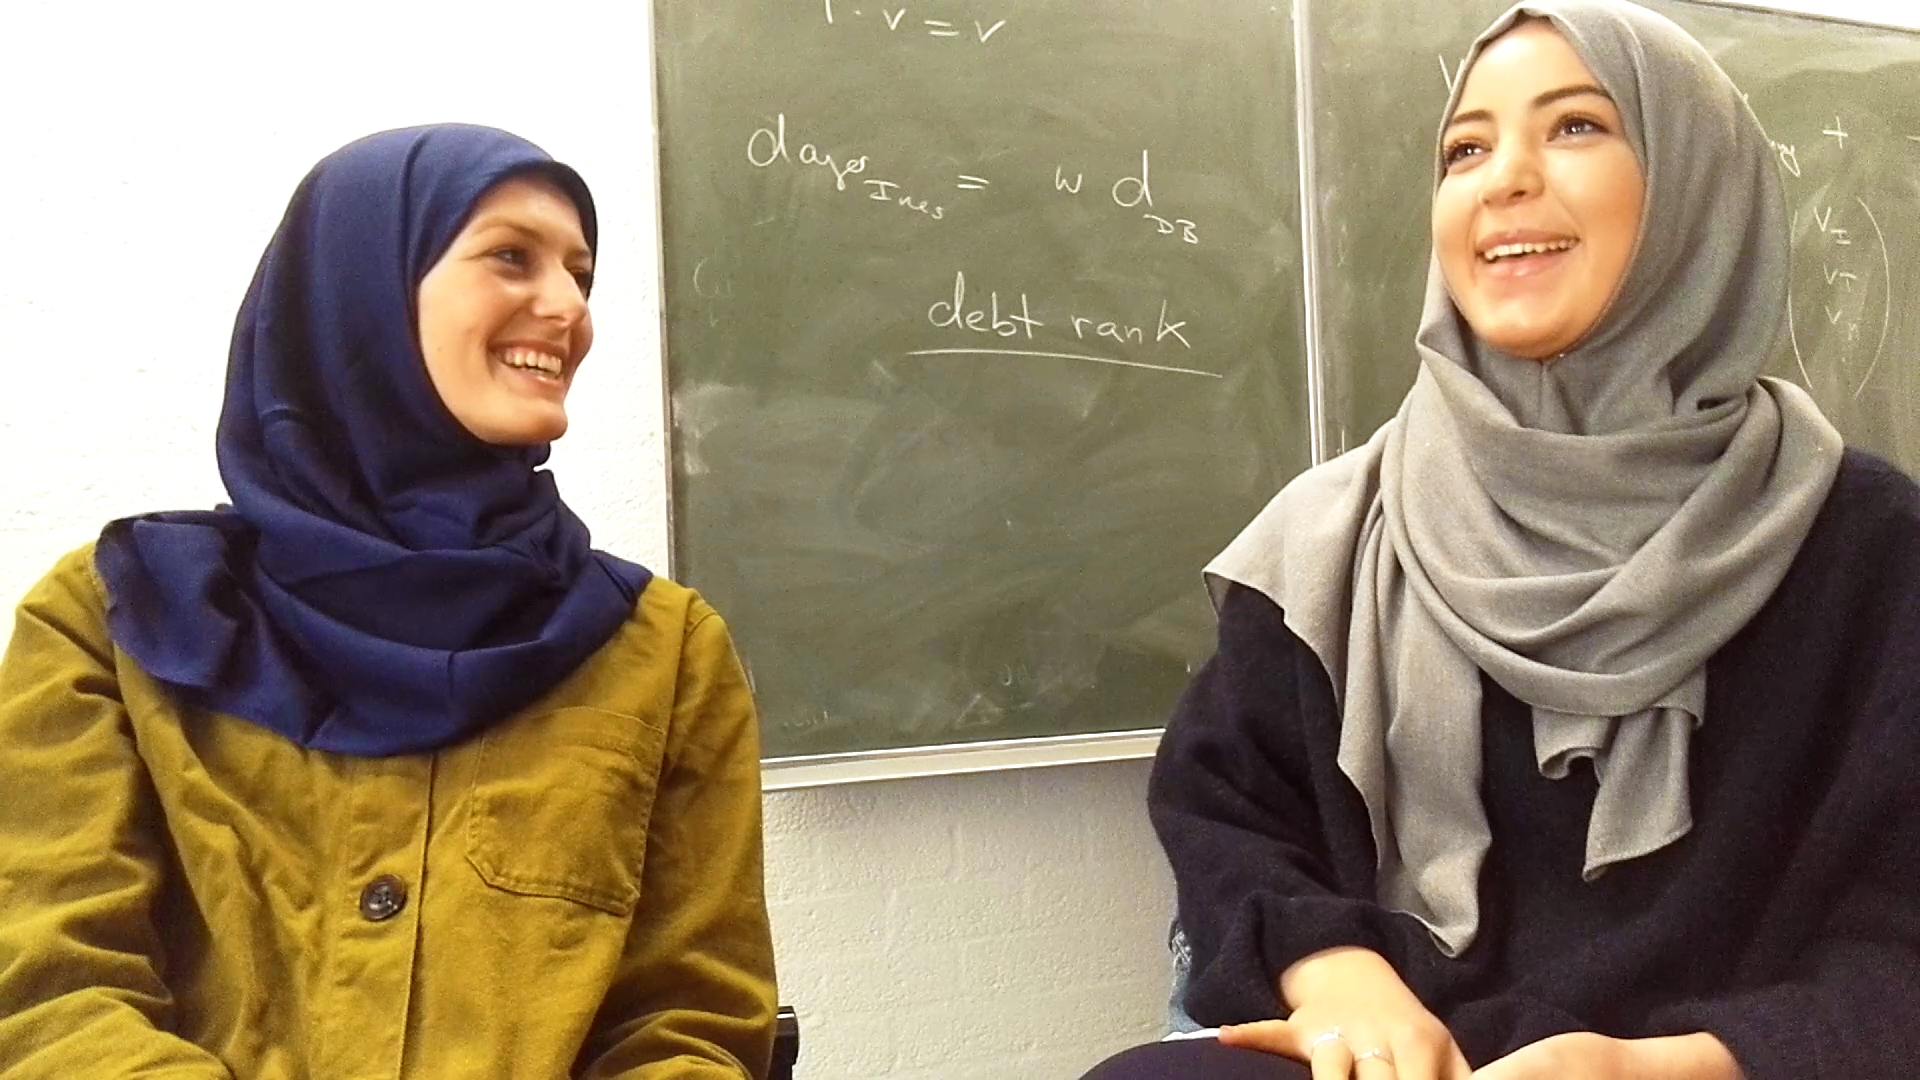 Under the Veil; different sides of the Hijab, Project, seven days with a headscarf by Vera IJzelenberg